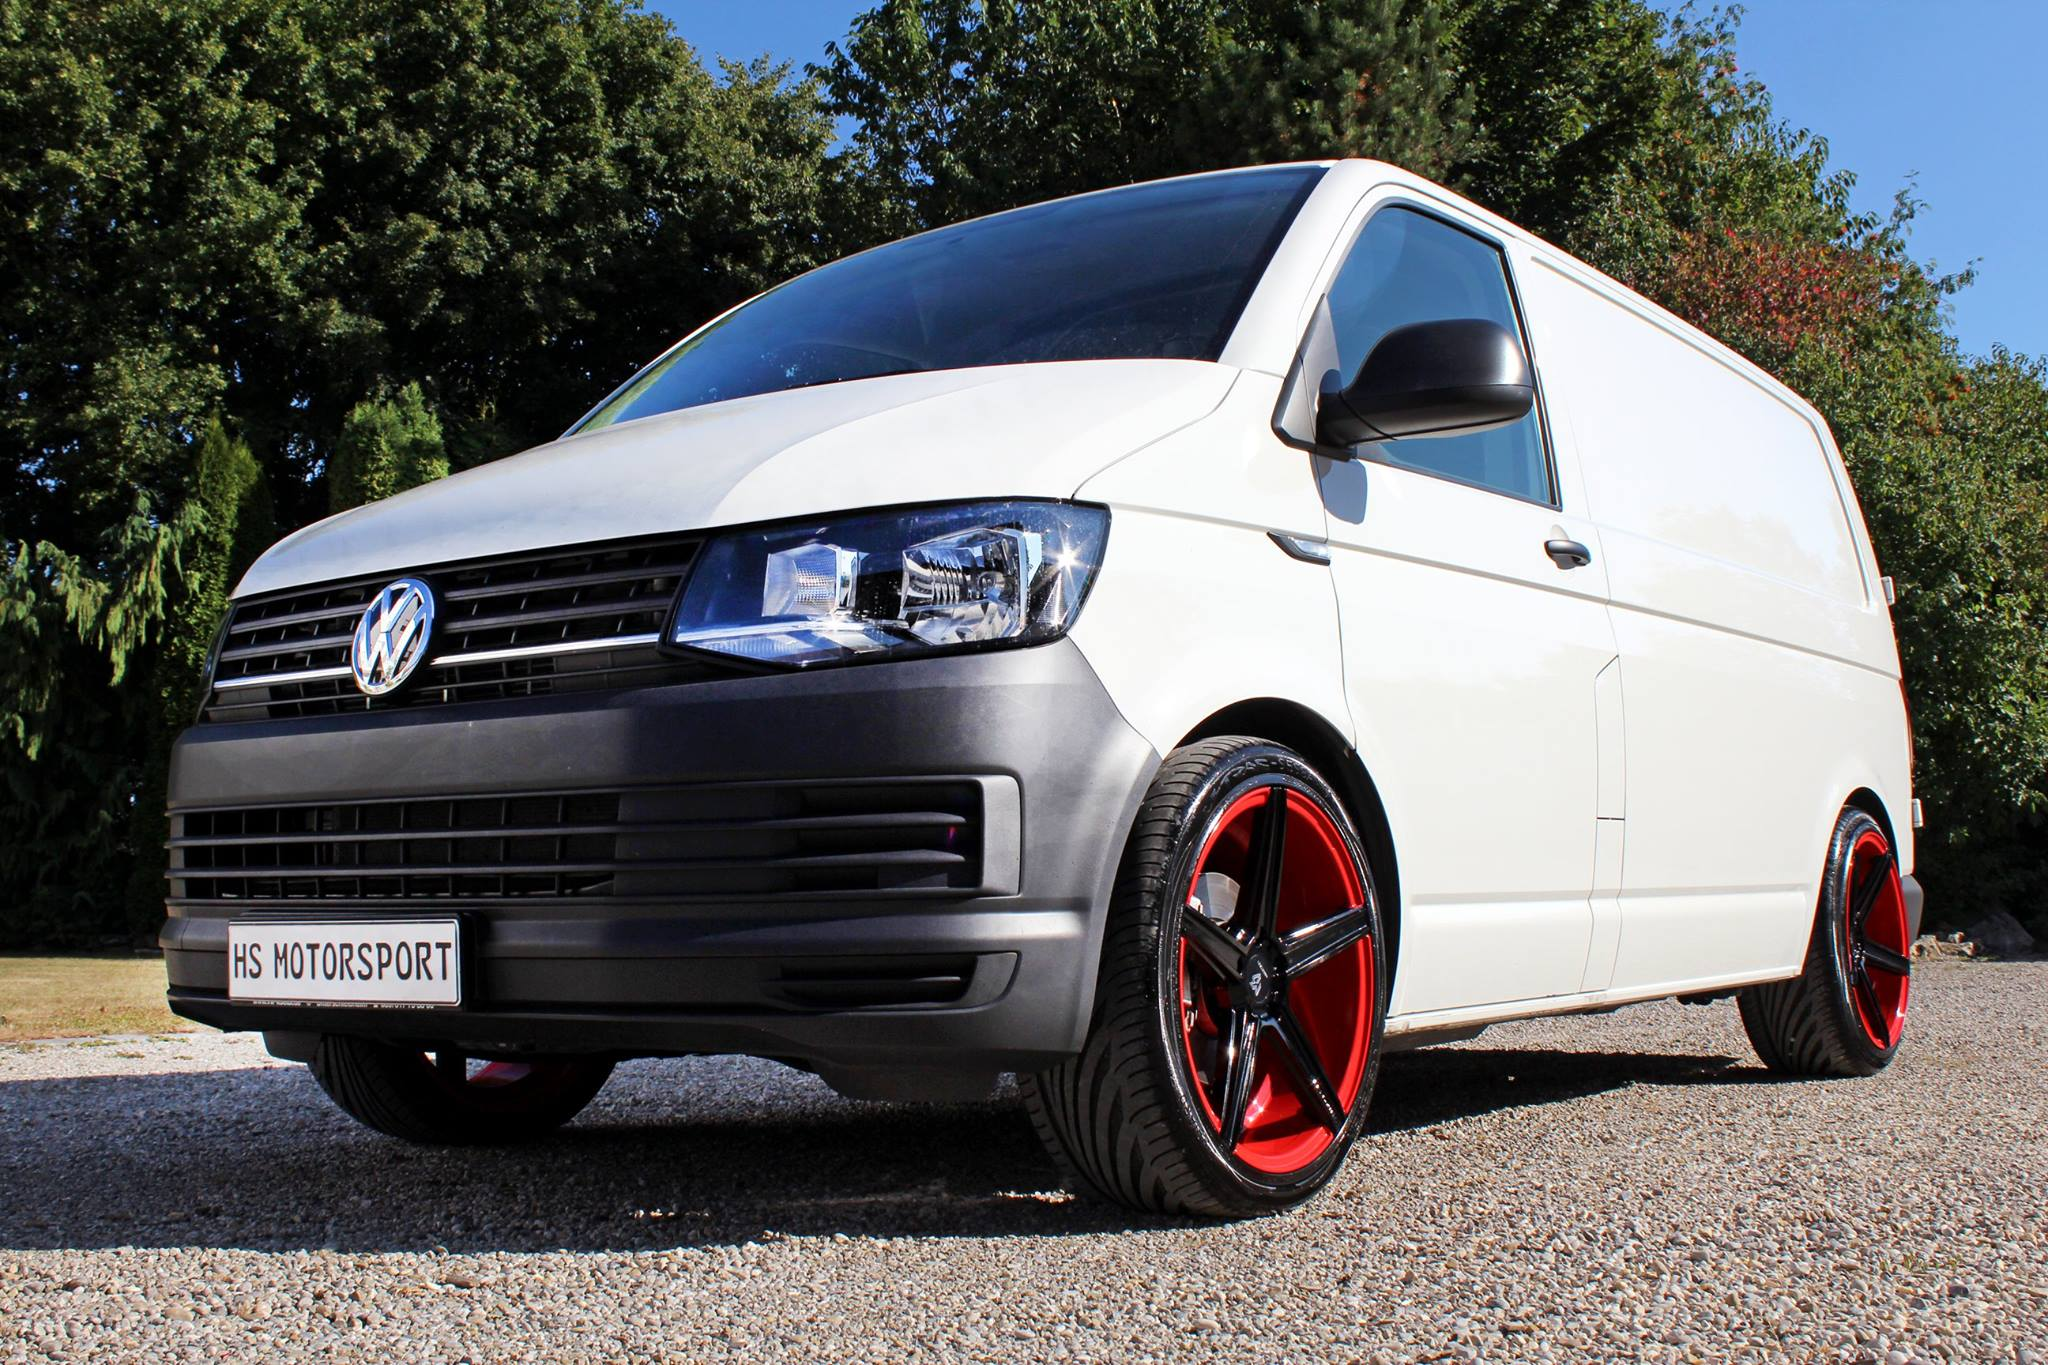 volkswagen t6 transporter 2 0 tdi tuned by hs motorsport. Black Bedroom Furniture Sets. Home Design Ideas